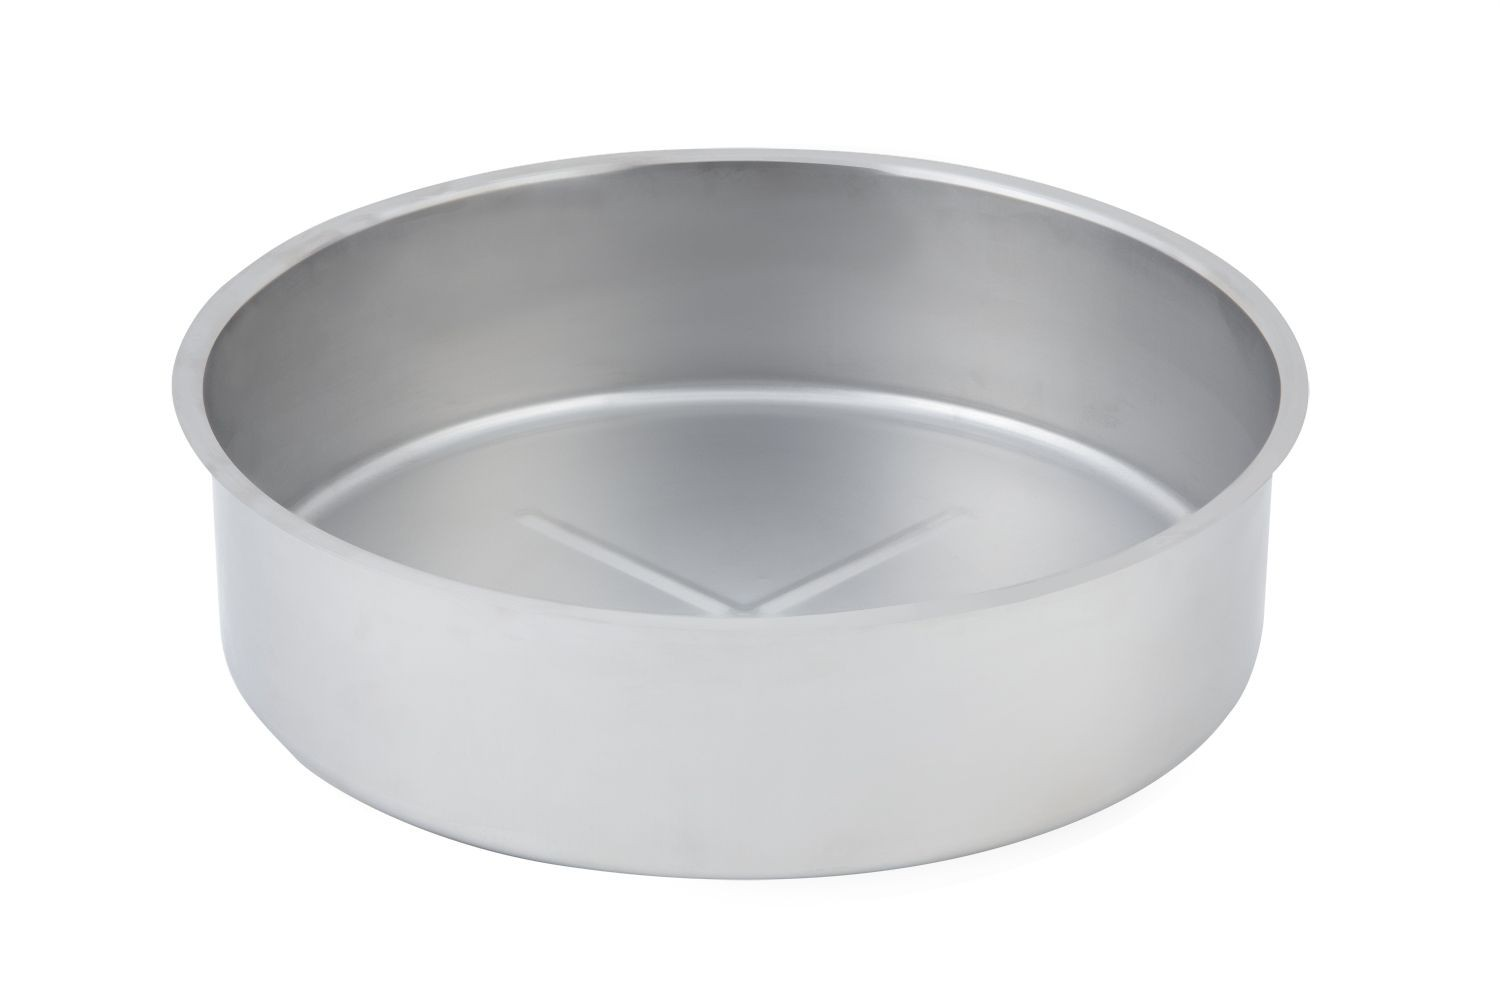 """Bon Chef 12002D Stainless Steel Extra Deep Water Pan for 12000, 15 1/4"""" Dia., 4 1/2"""" H."""